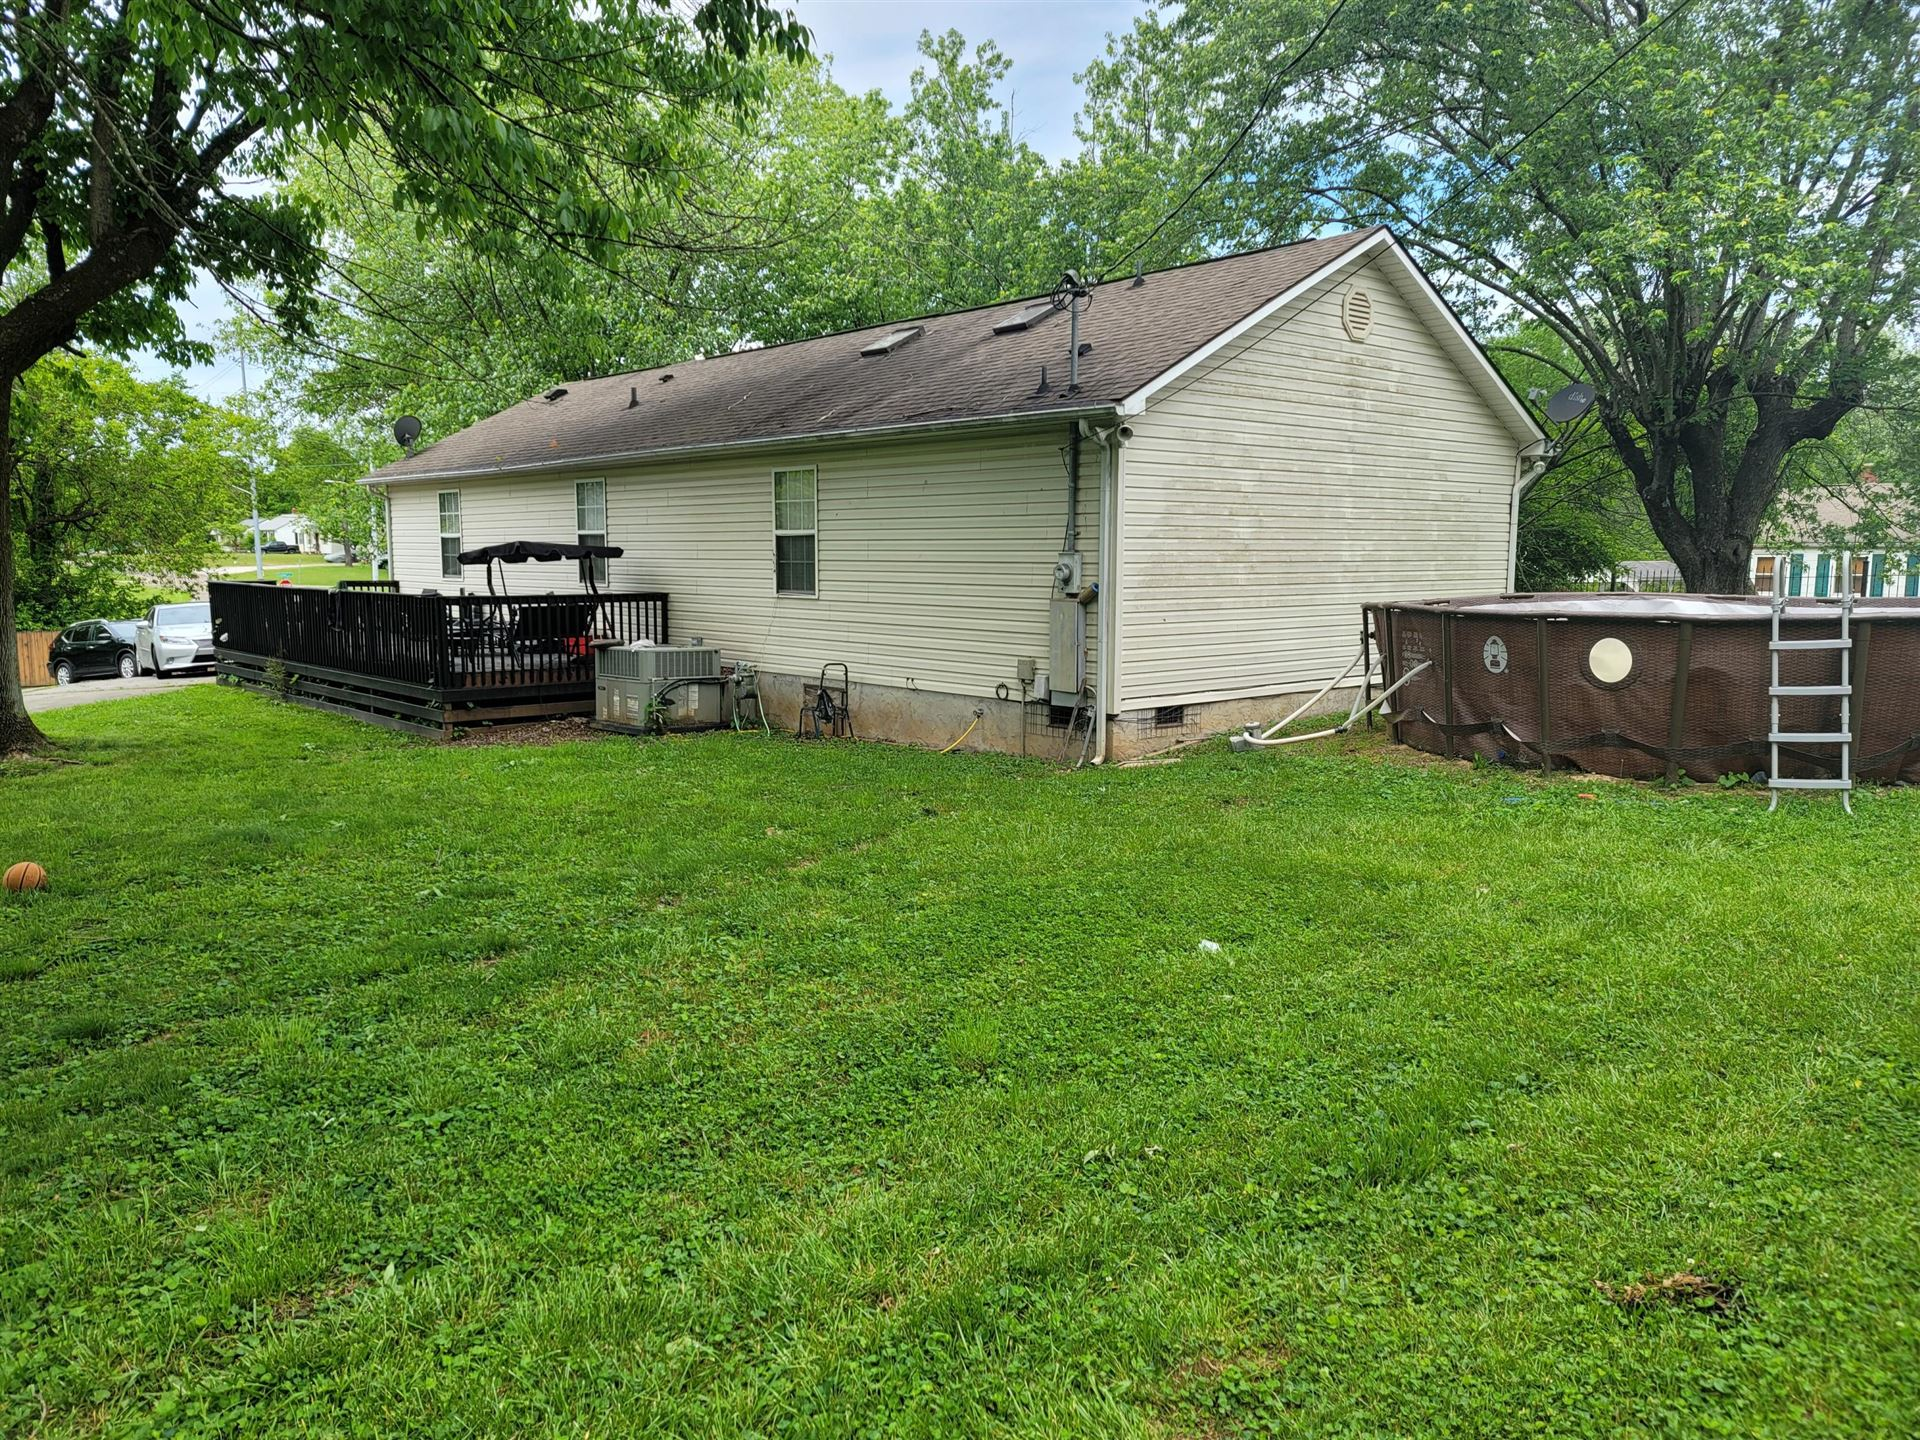 Photo of 3326 Selma Ave, Knoxville, TN 37914 (MLS # 1152868)